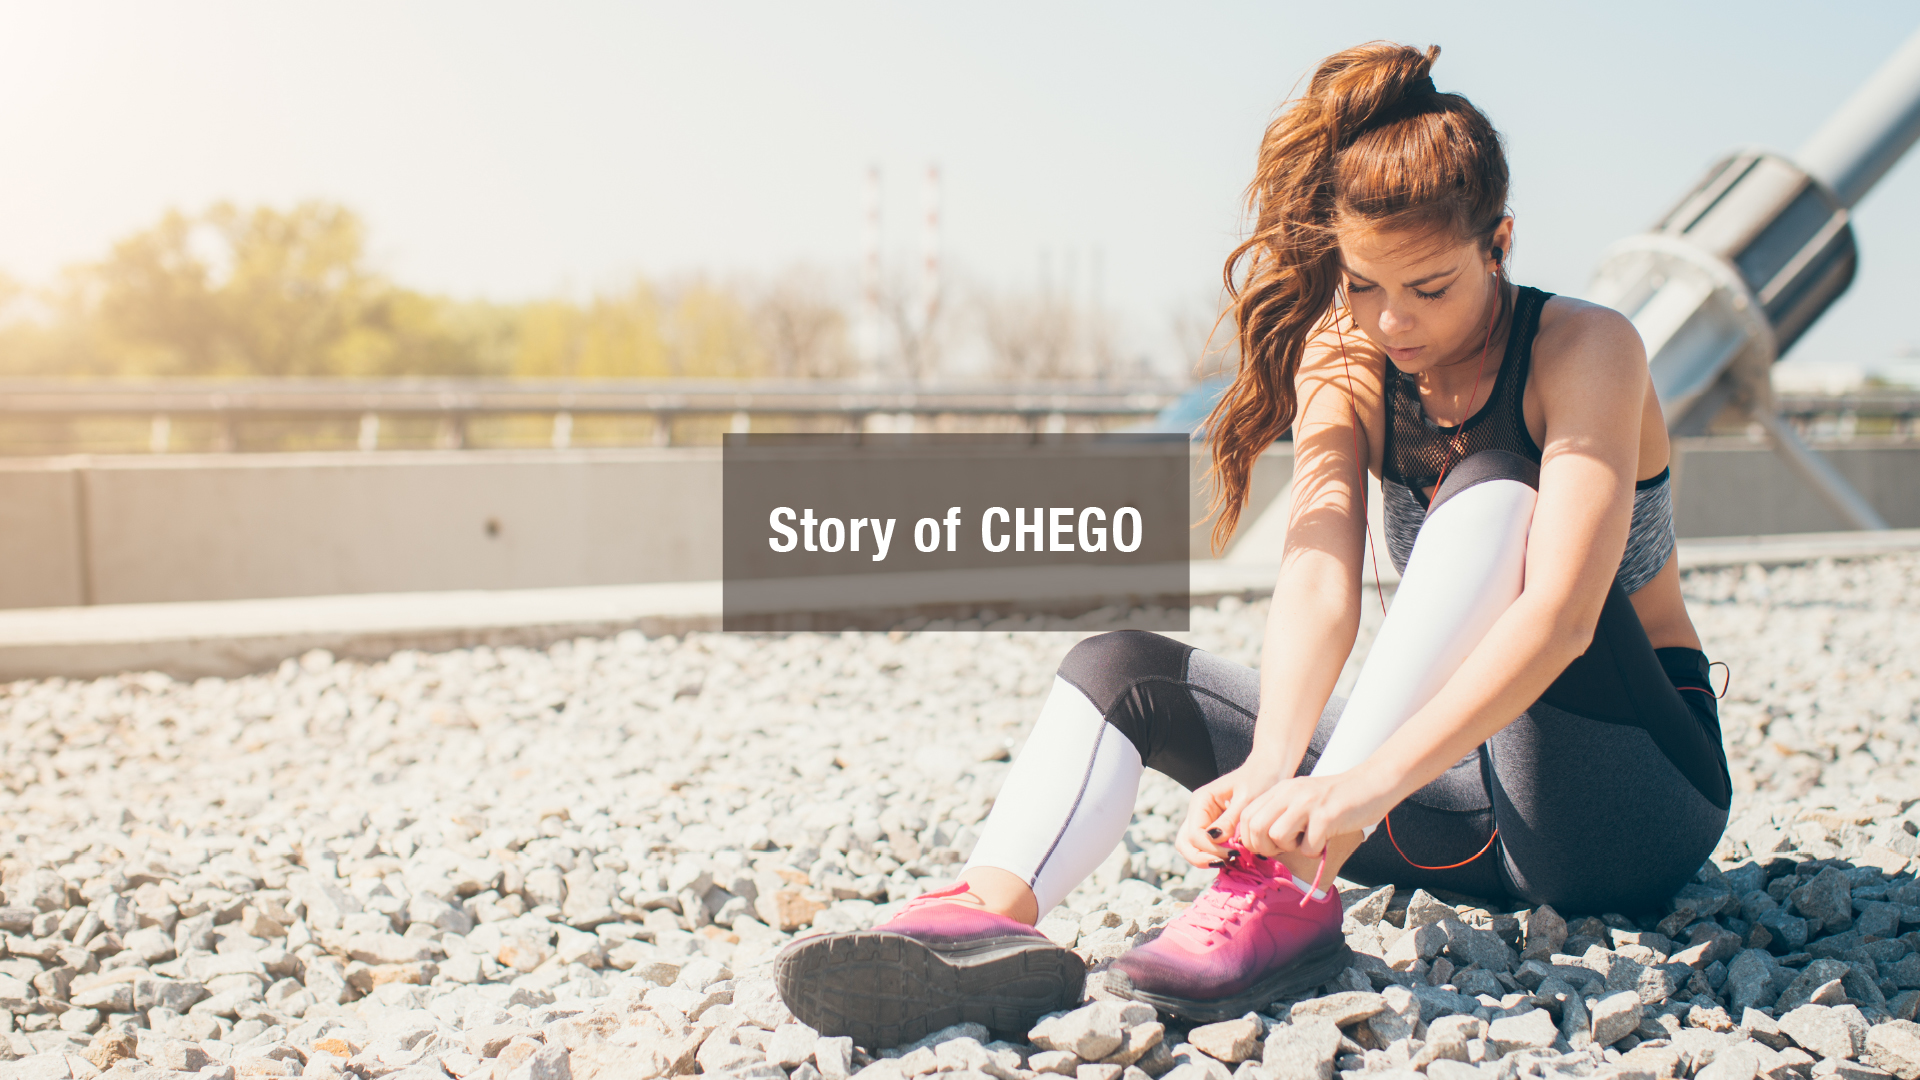 Story of CHEGO